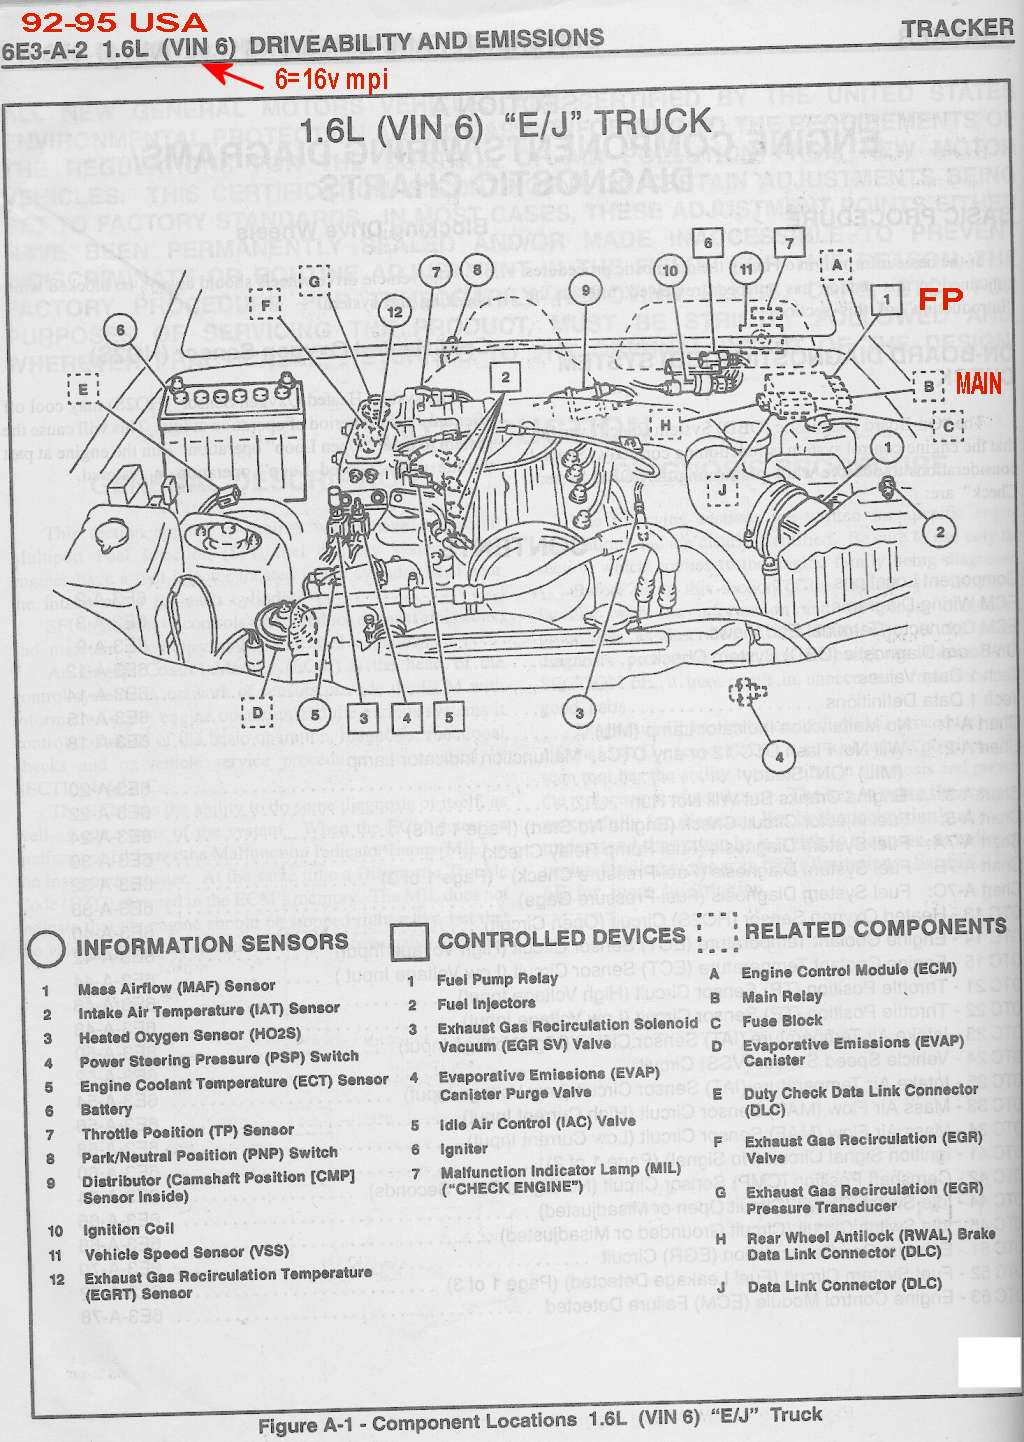 [WRG-5461] 1995 Geo Tracker Wiring Diagram